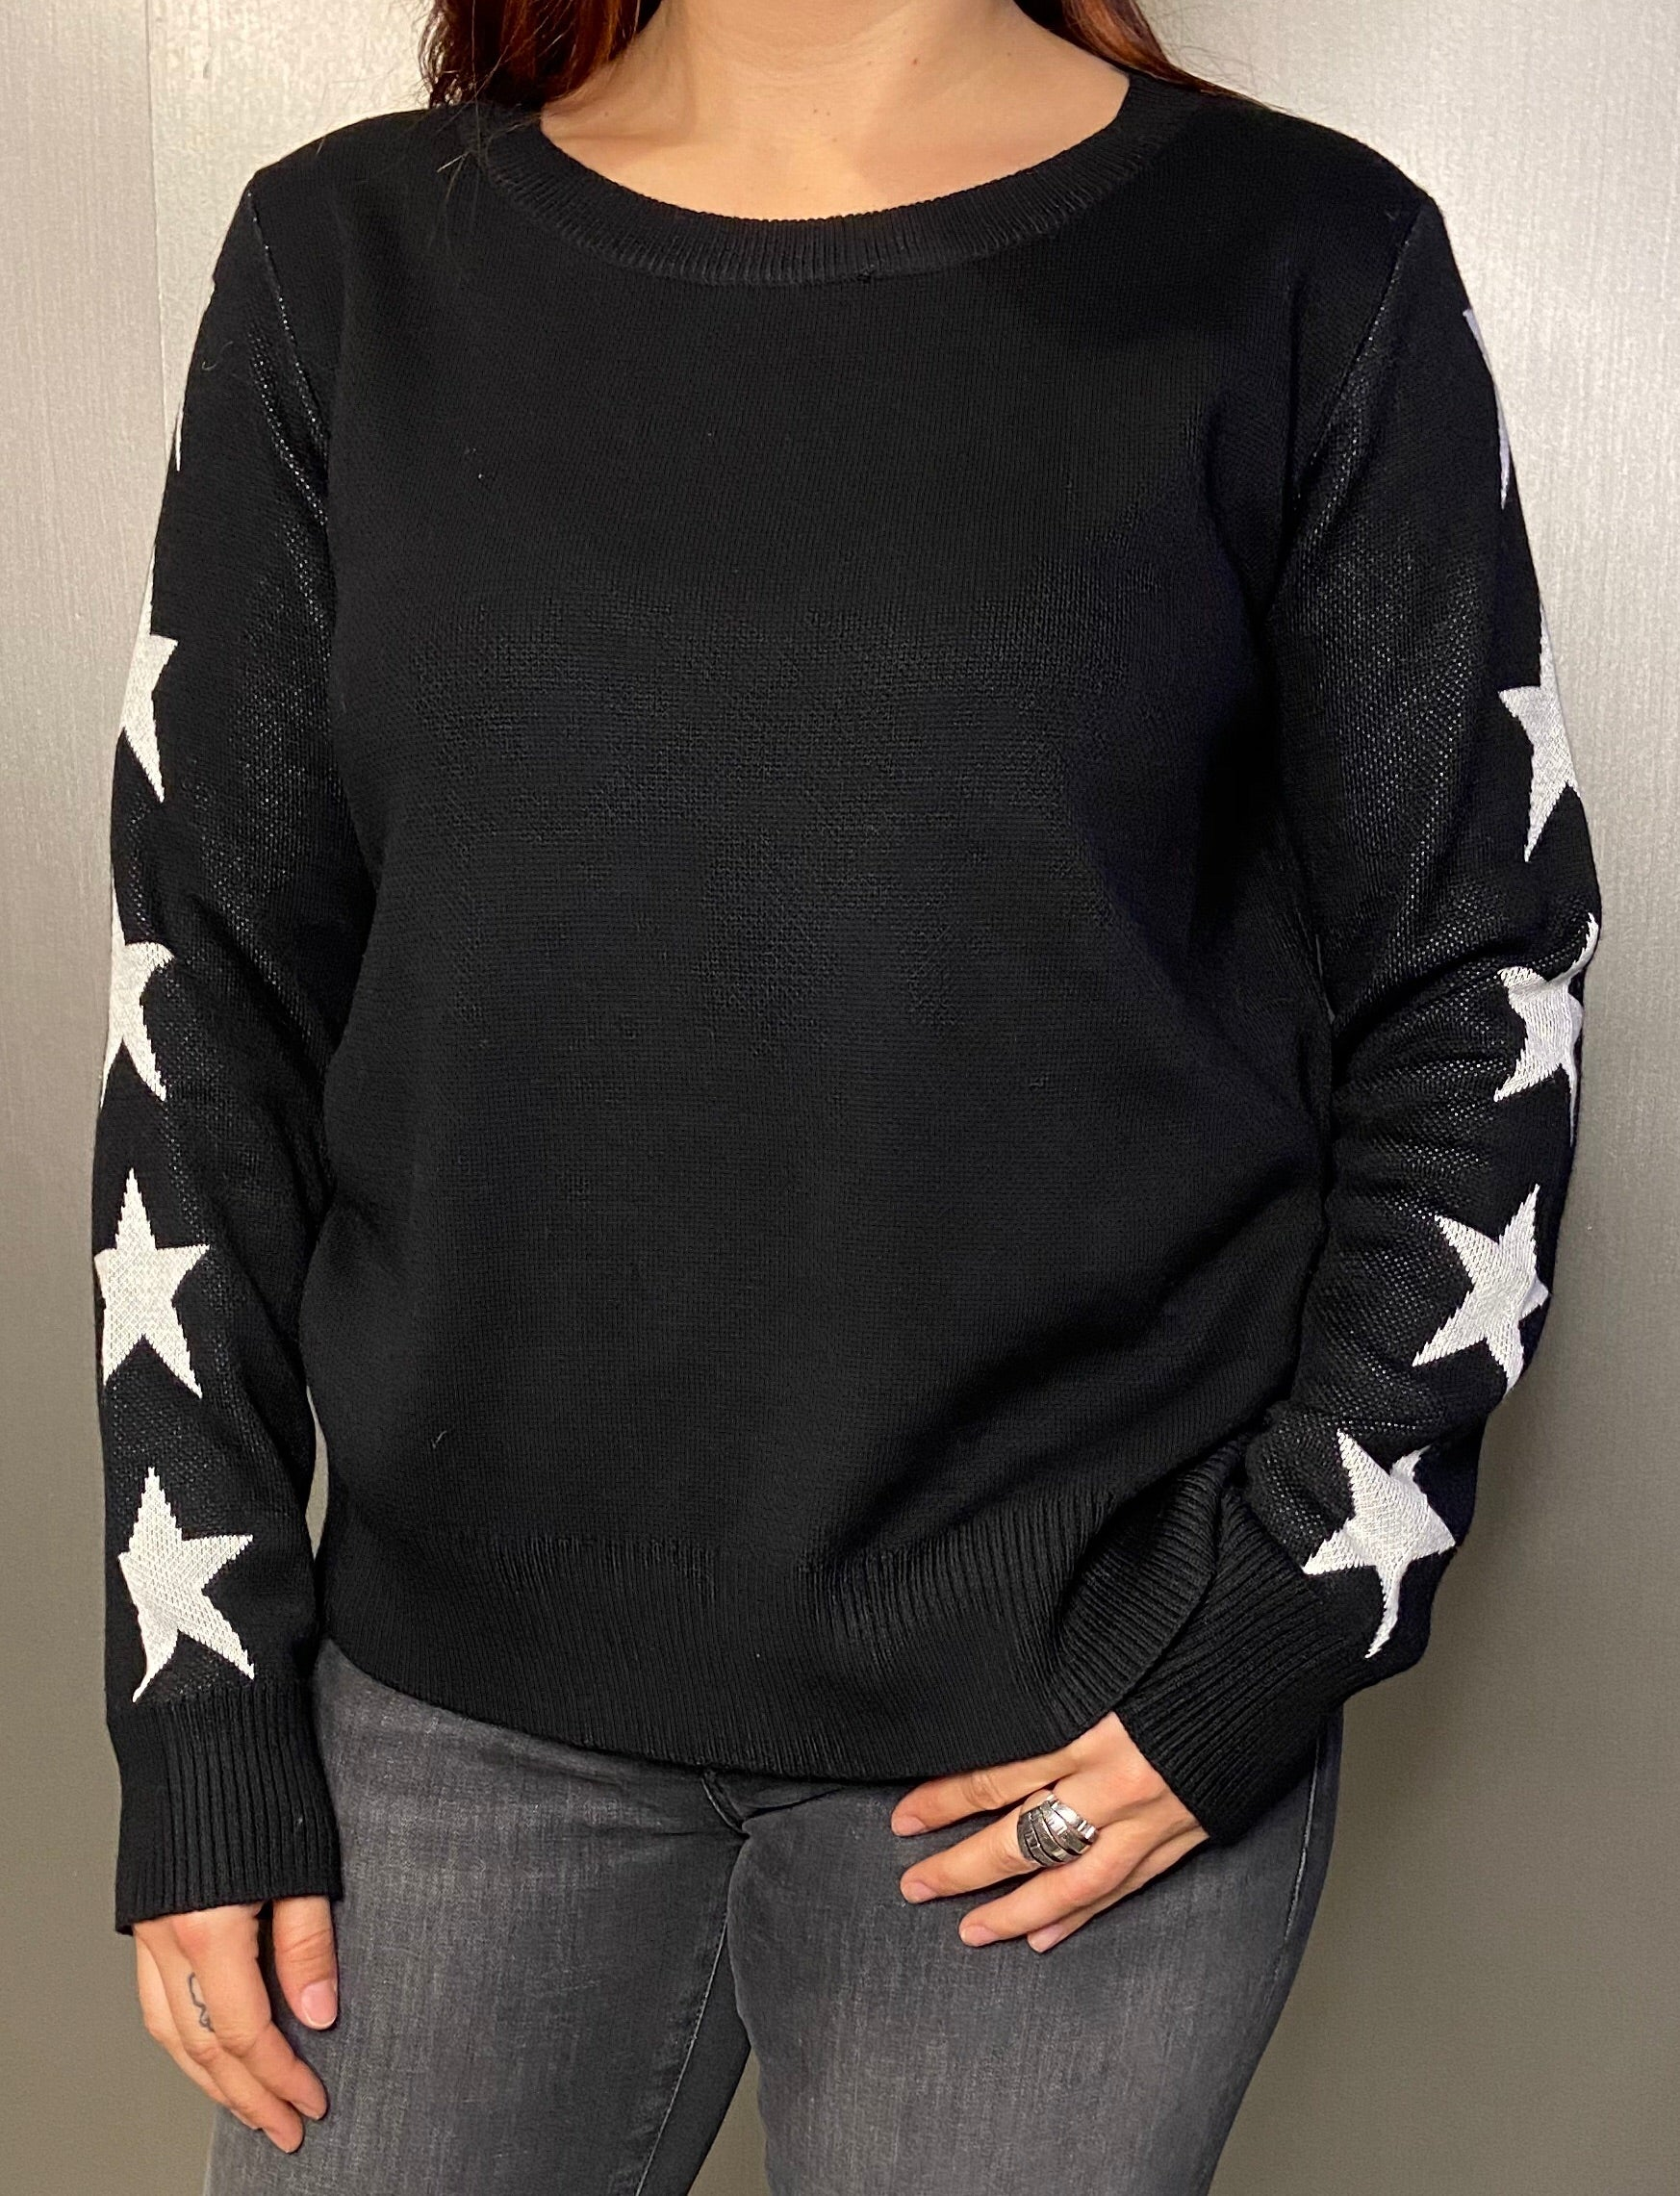 Star sleeve knit